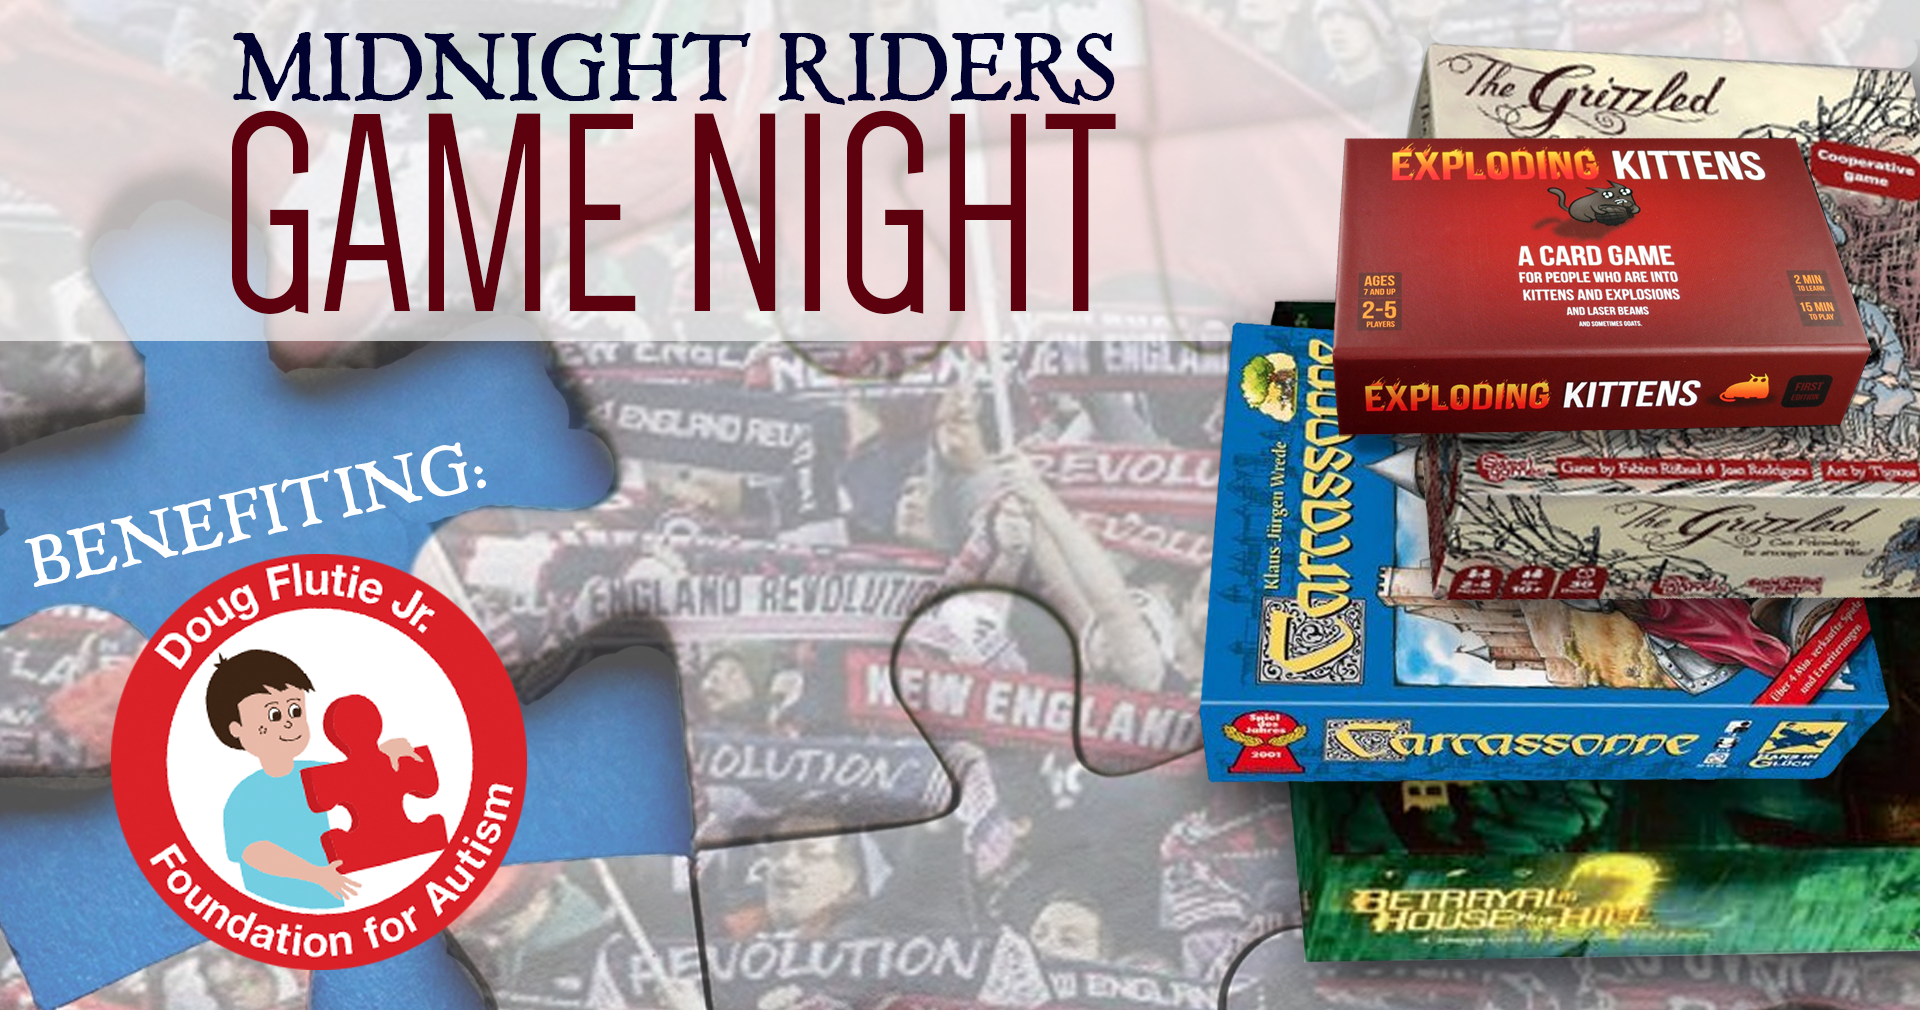 Midnight Riders Game Night